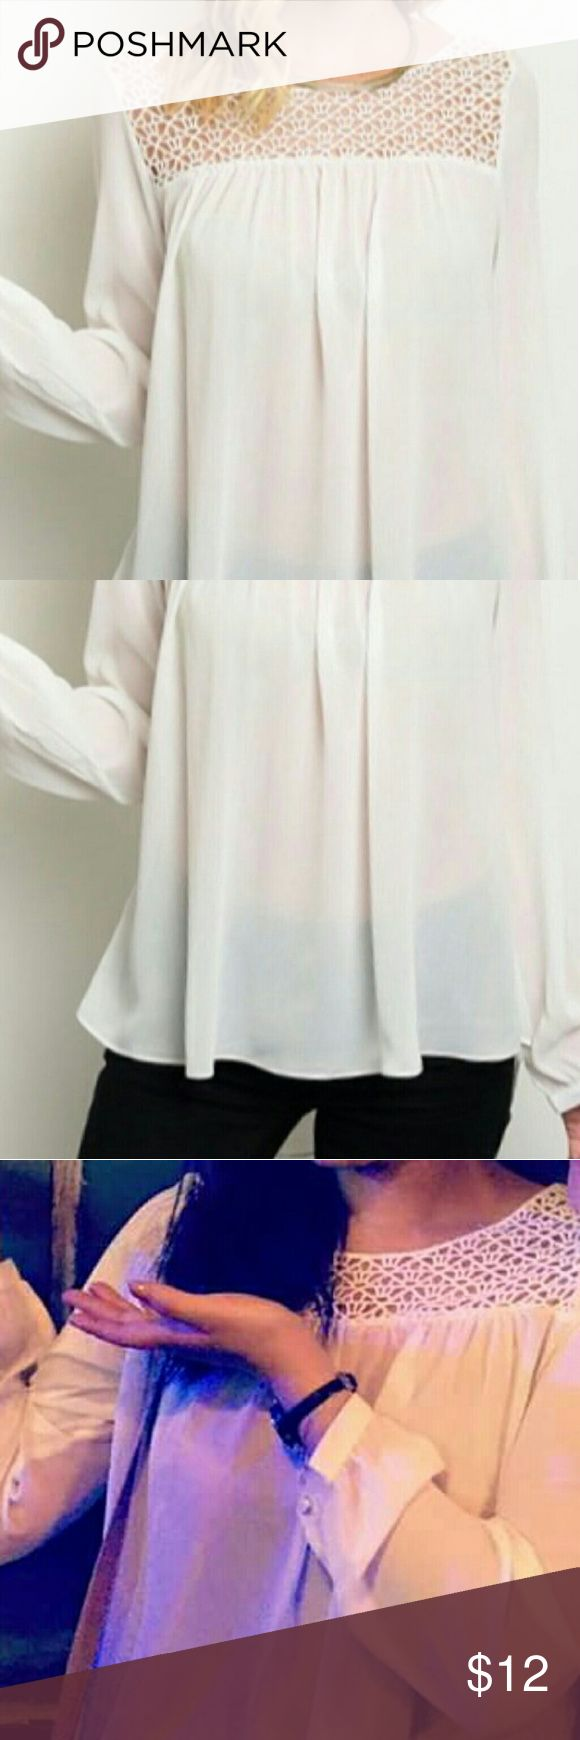 White Sheer Boho Blouse Purchased from White Plum, worn once. Pleated, sheer blouse w adorable latticework detailing at the top, both front and back. No defects. Measurements upon request. Thanks for looking! Oh My Julian Tops